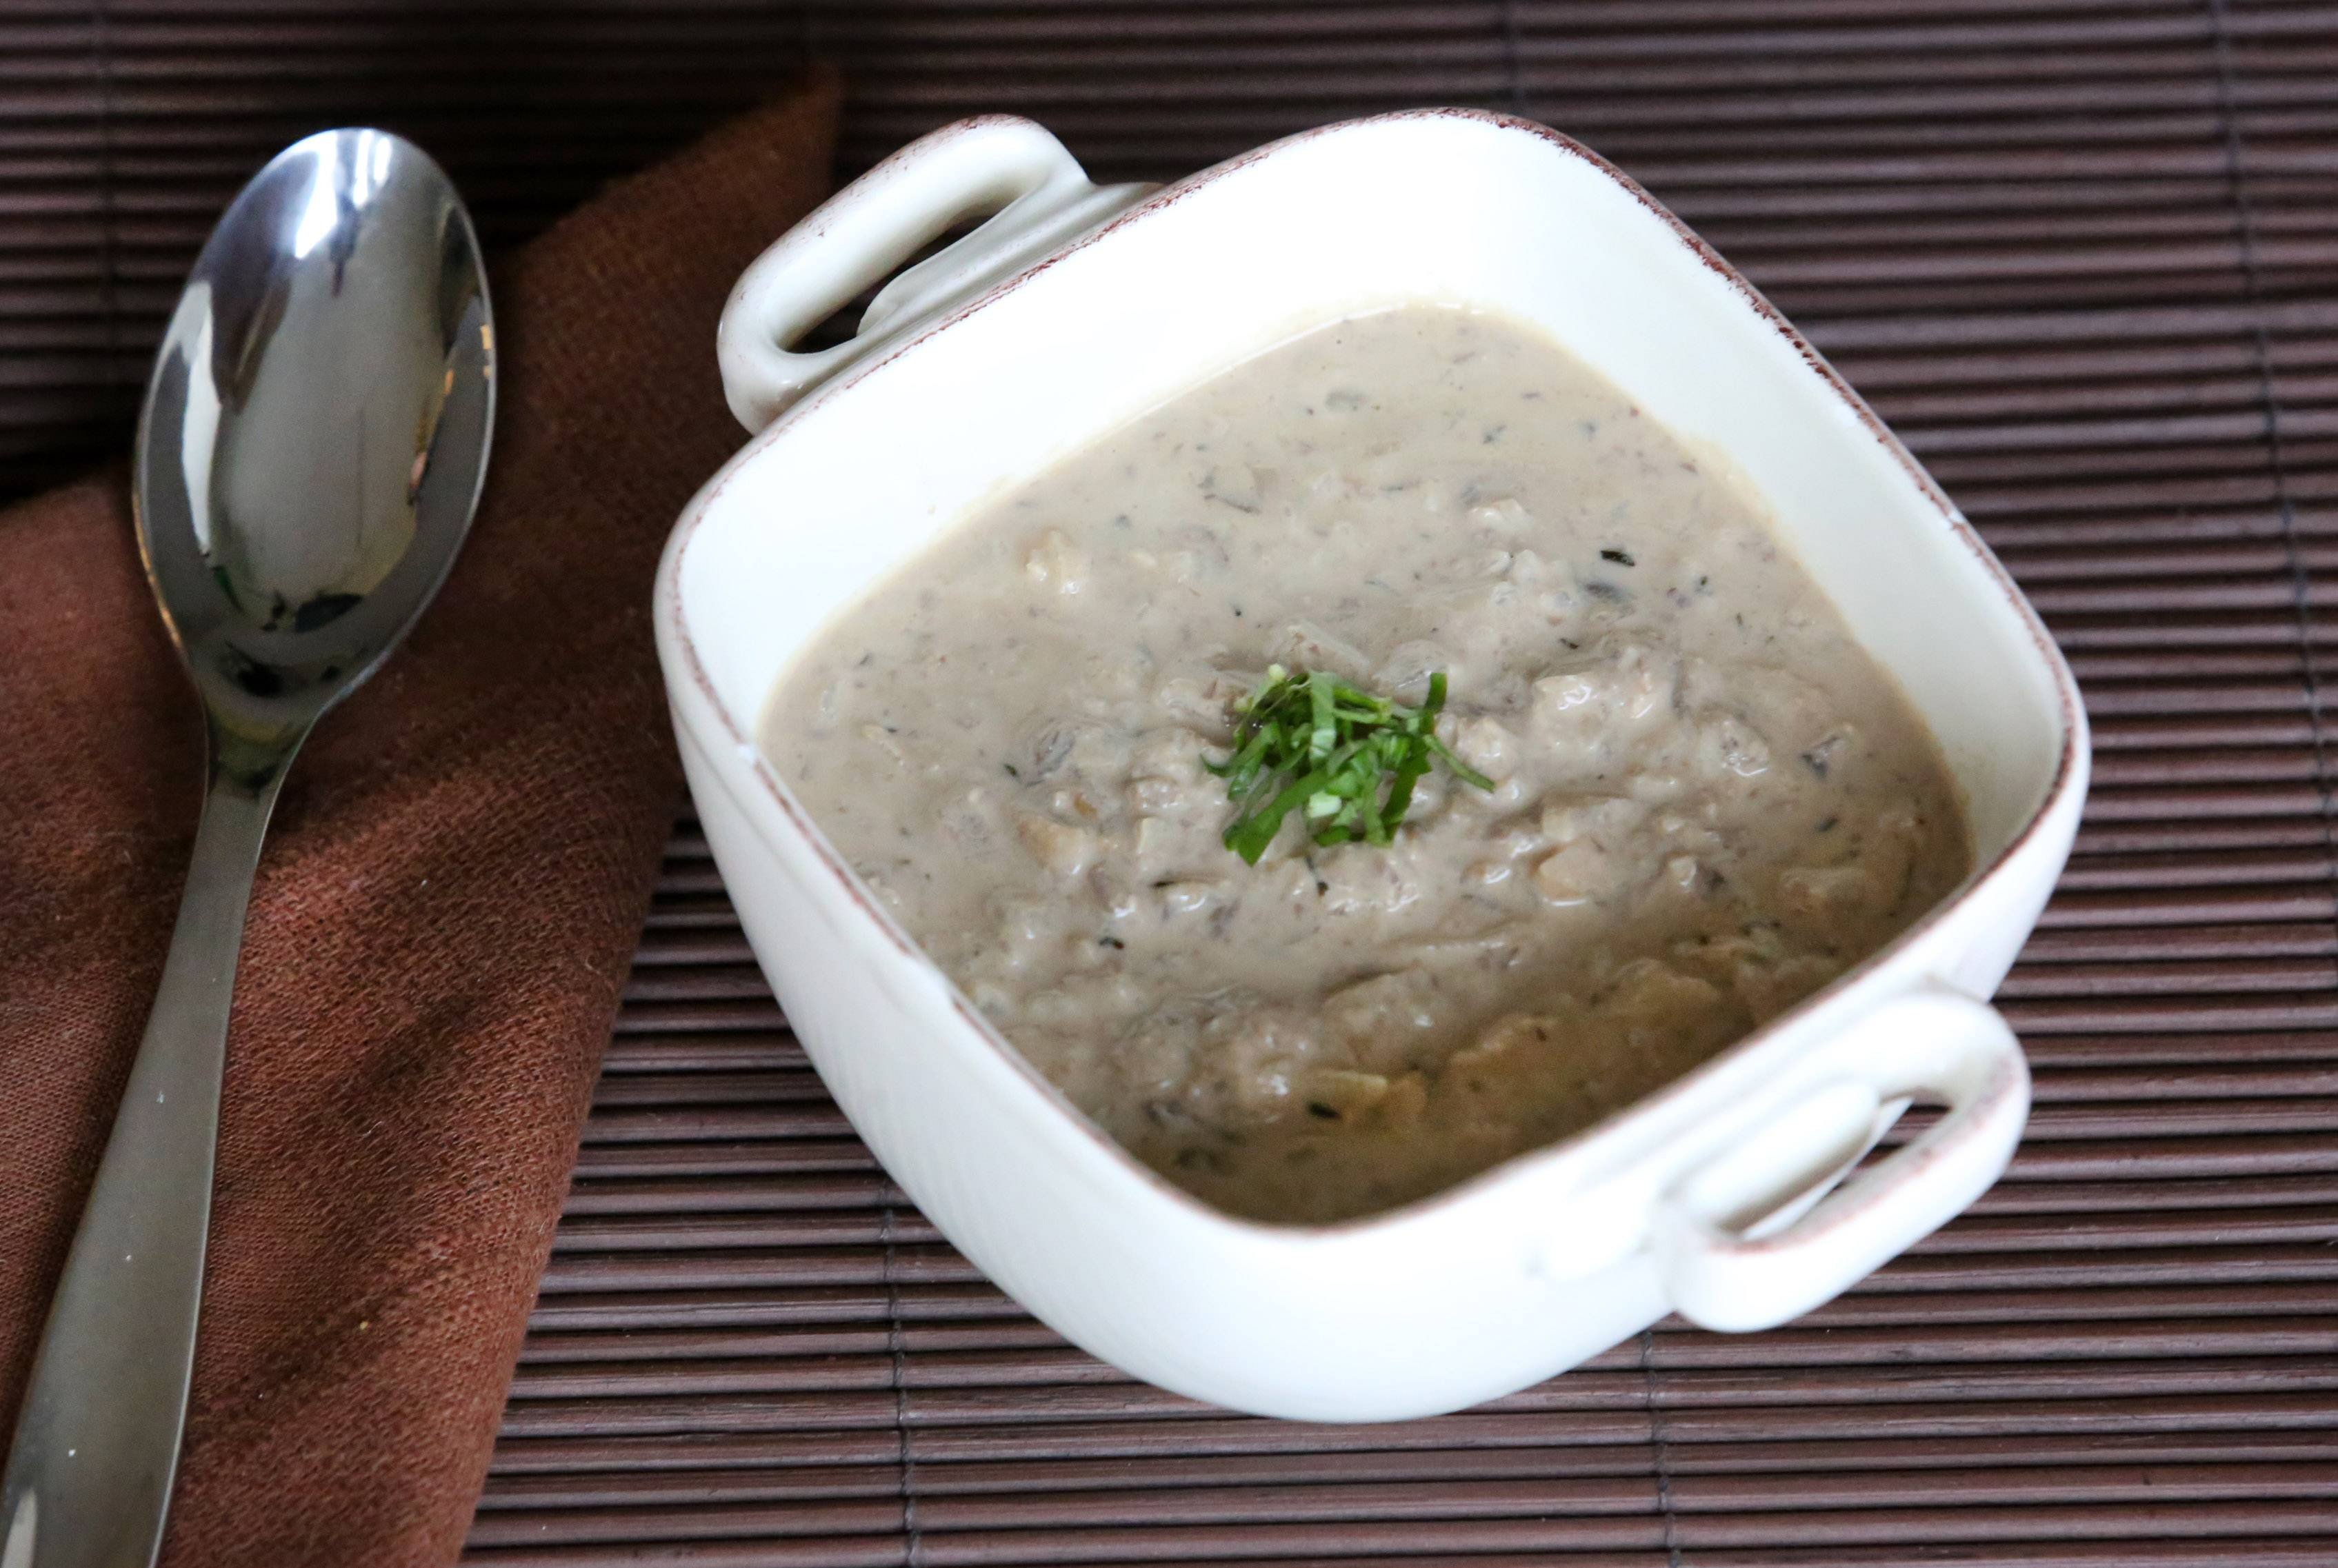 Walnut Mushroom Soup gets its creaminess from blended almond milk and mushrooms.